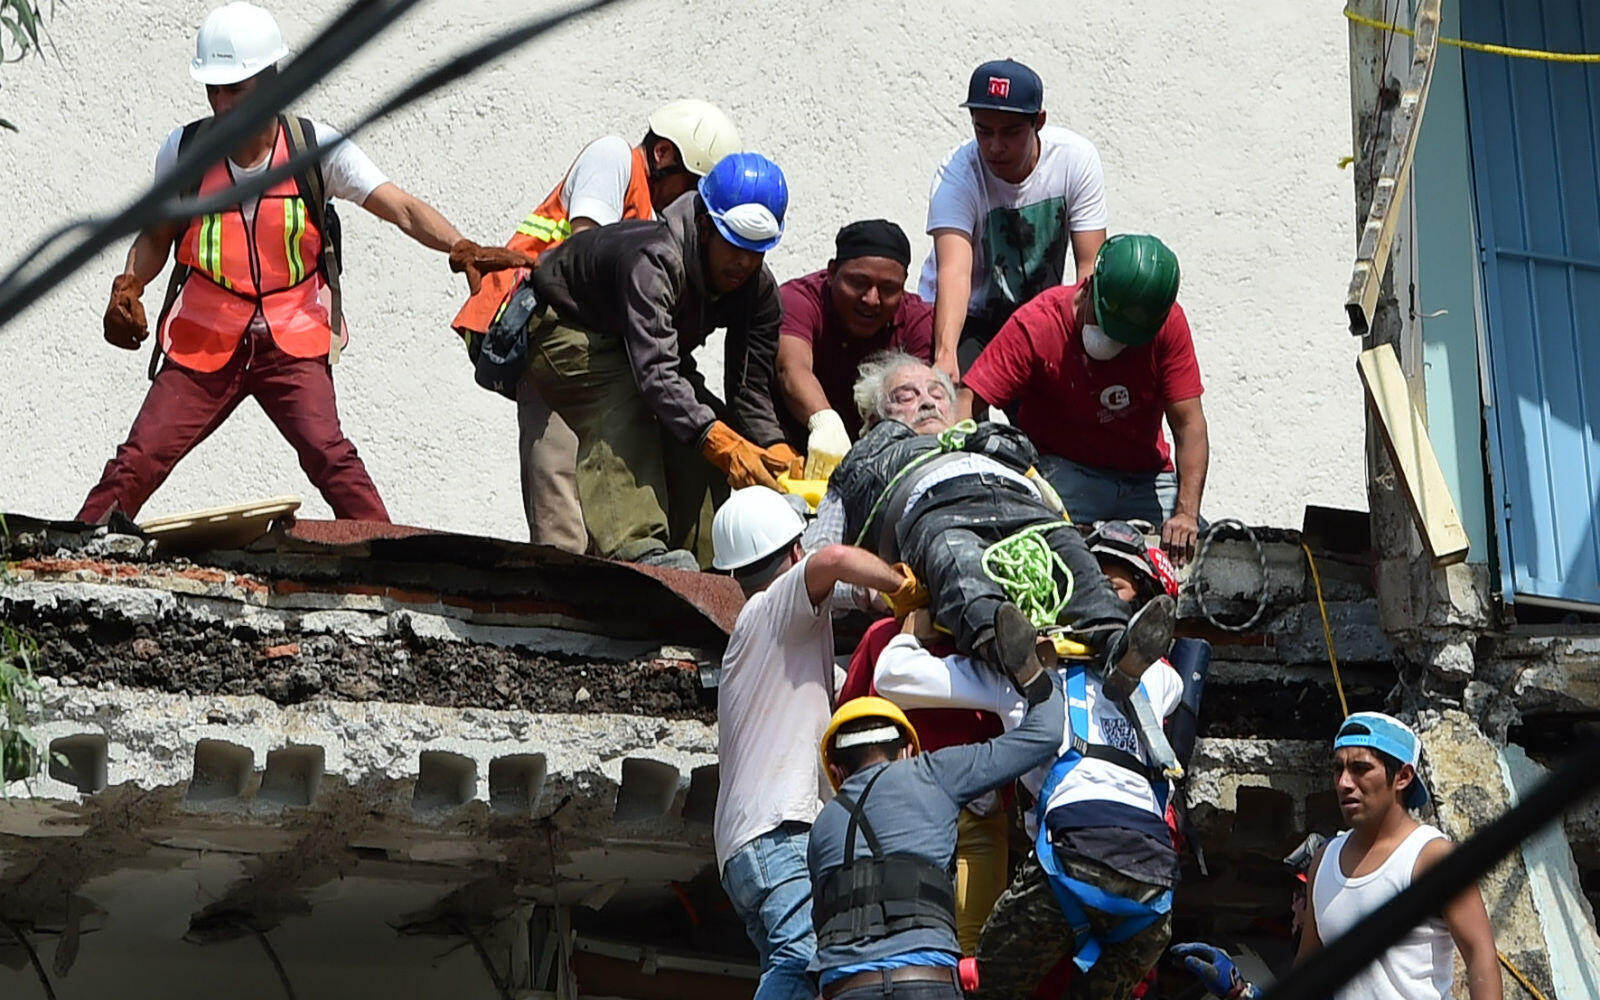 A man is rescued from the rubble of a collapsed building in Mexico City.